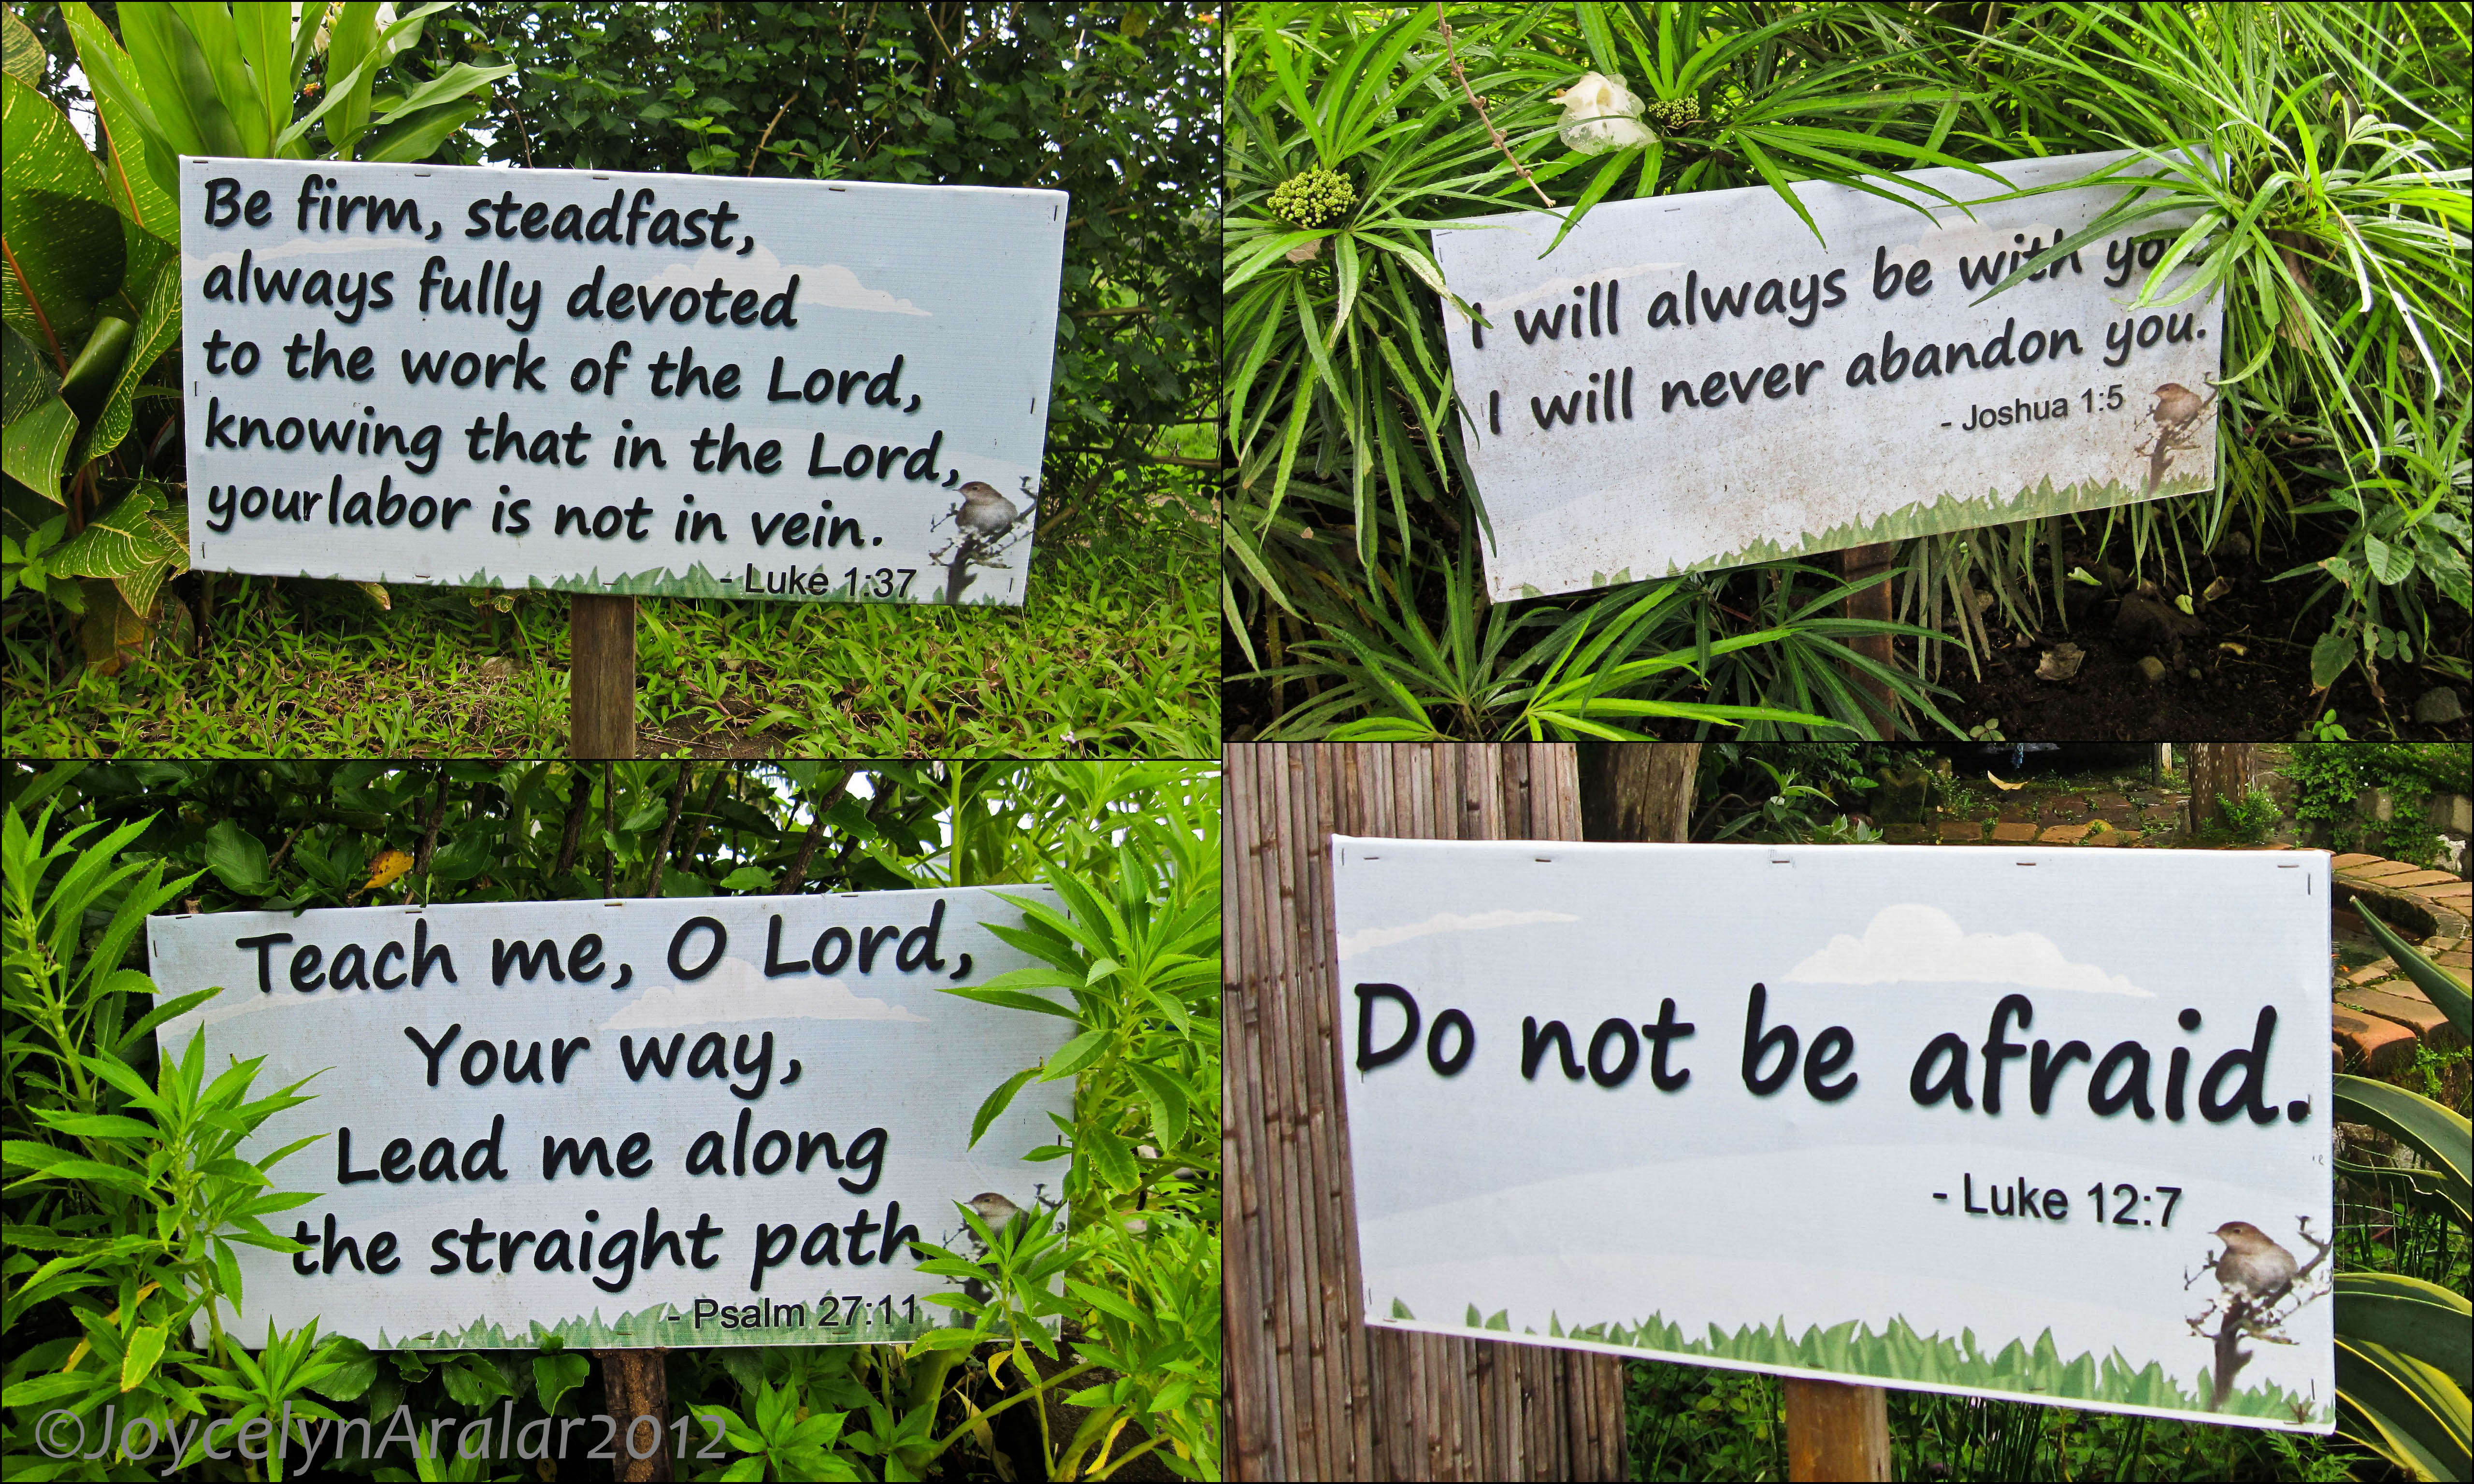 If you walk around the area, you will find these bible verses planted ...